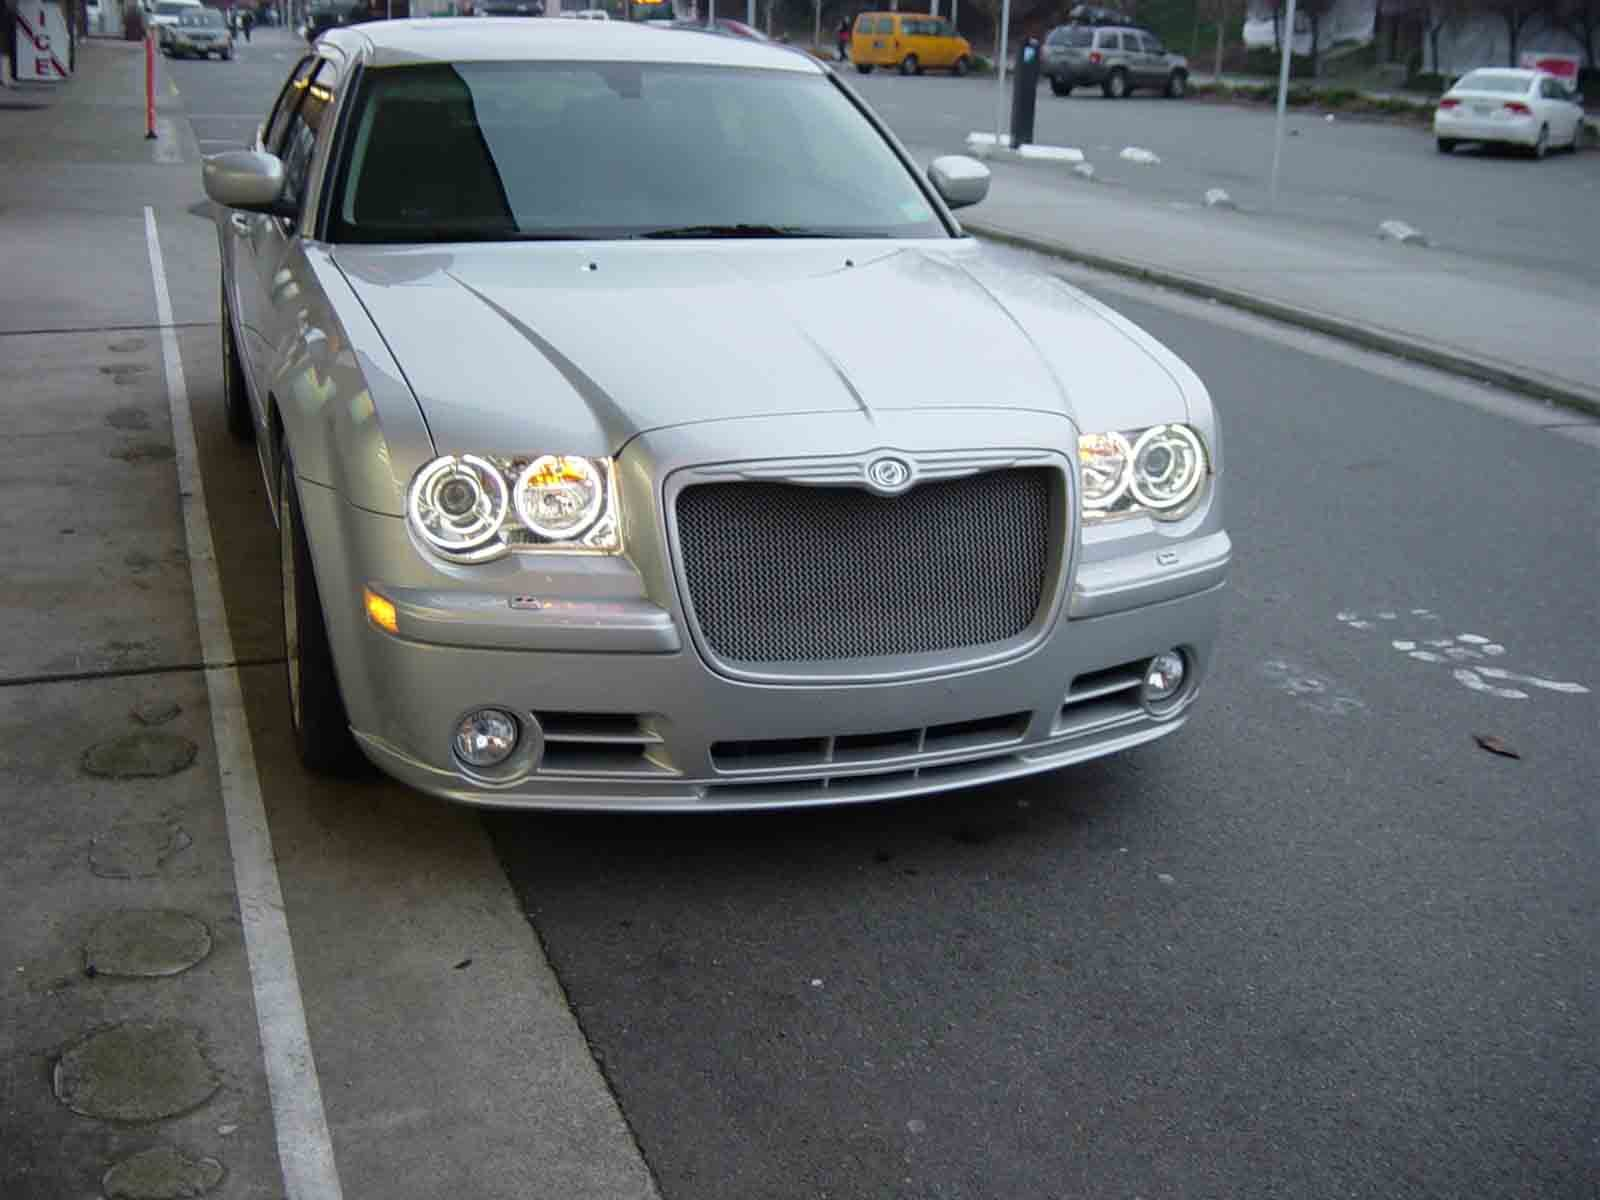 Led driving lights for 300 page 2 chrysler 300c forum 300c led driving lights for 300 page 2 chrysler 300c forum 300c srt8 forums vanachro Image collections